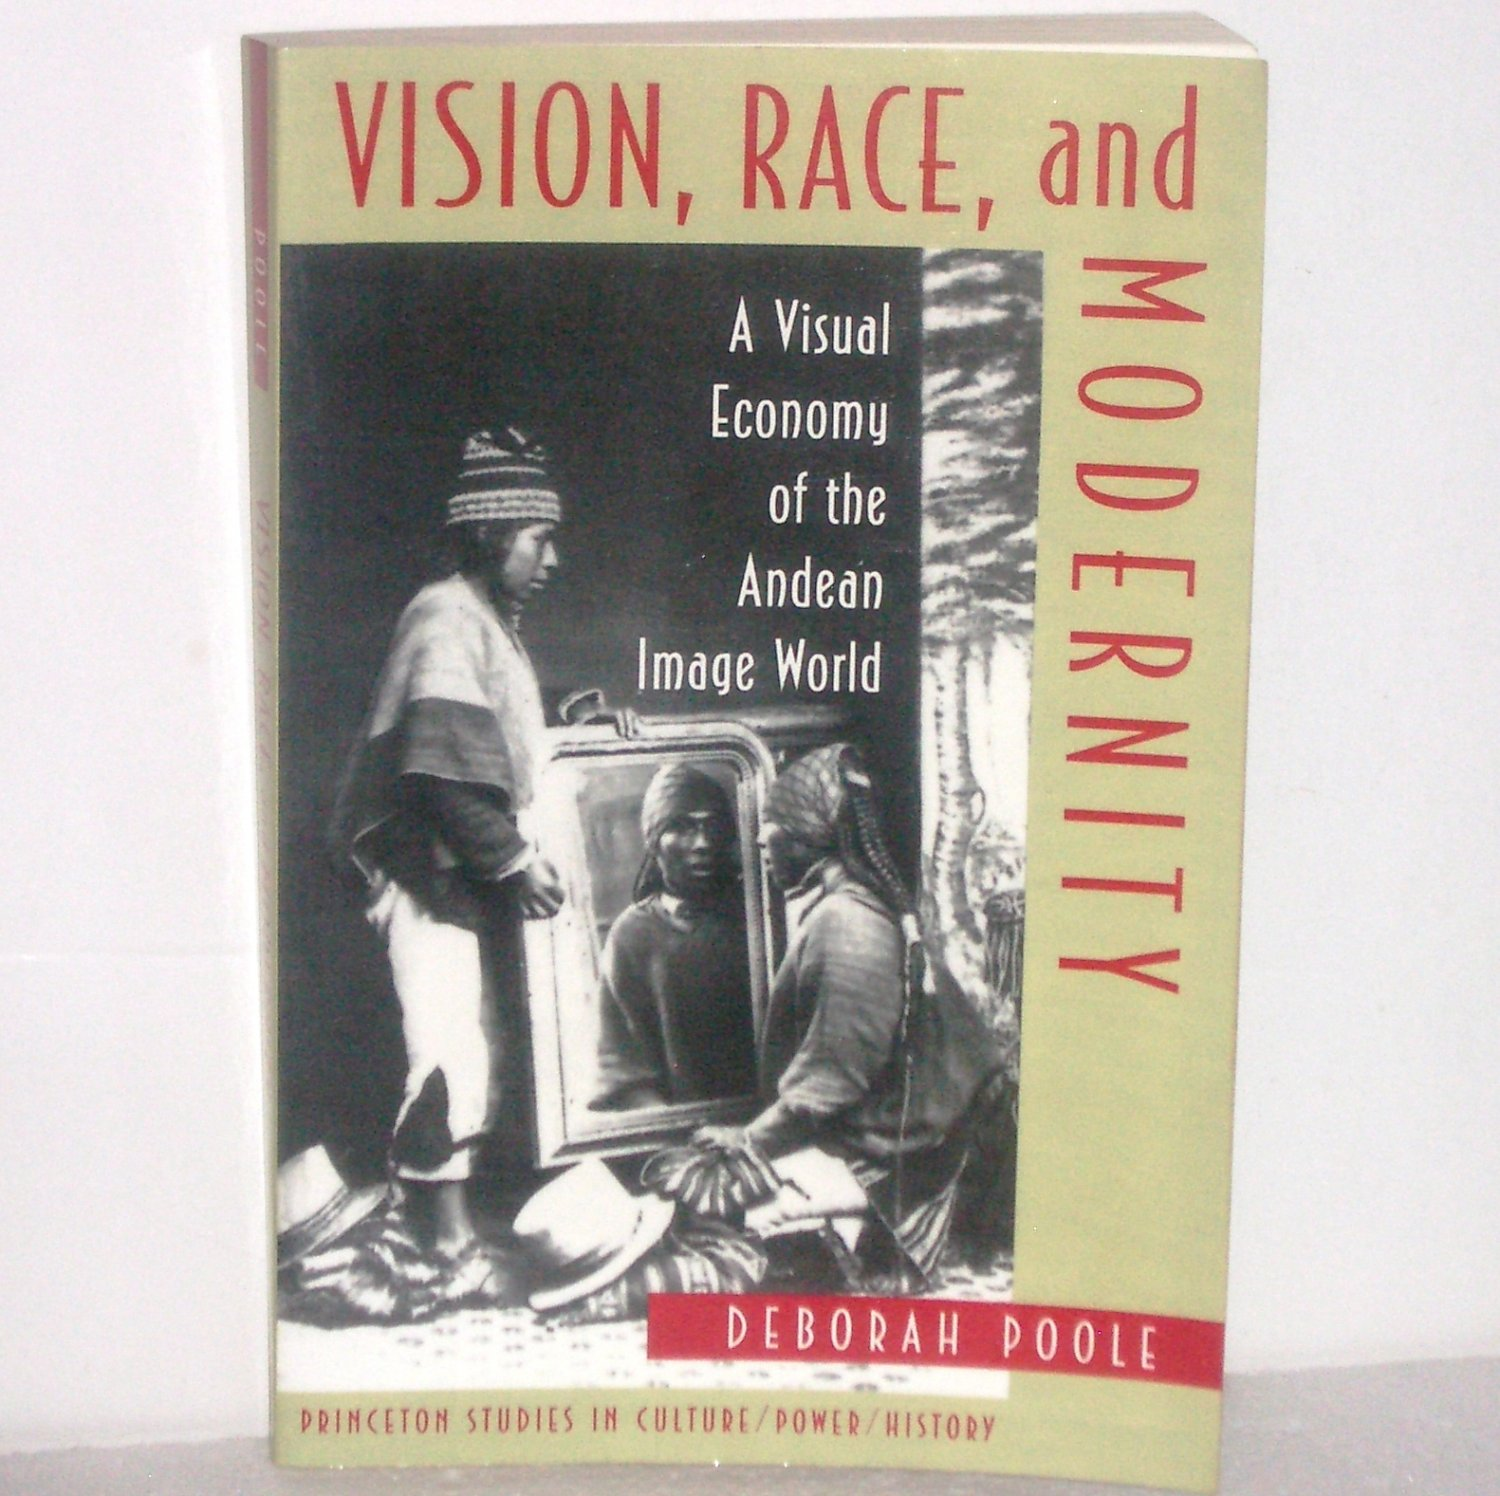 Vision, Race, and Modernity: A Visual Economy of the Andean World by Deborah Poole 1997